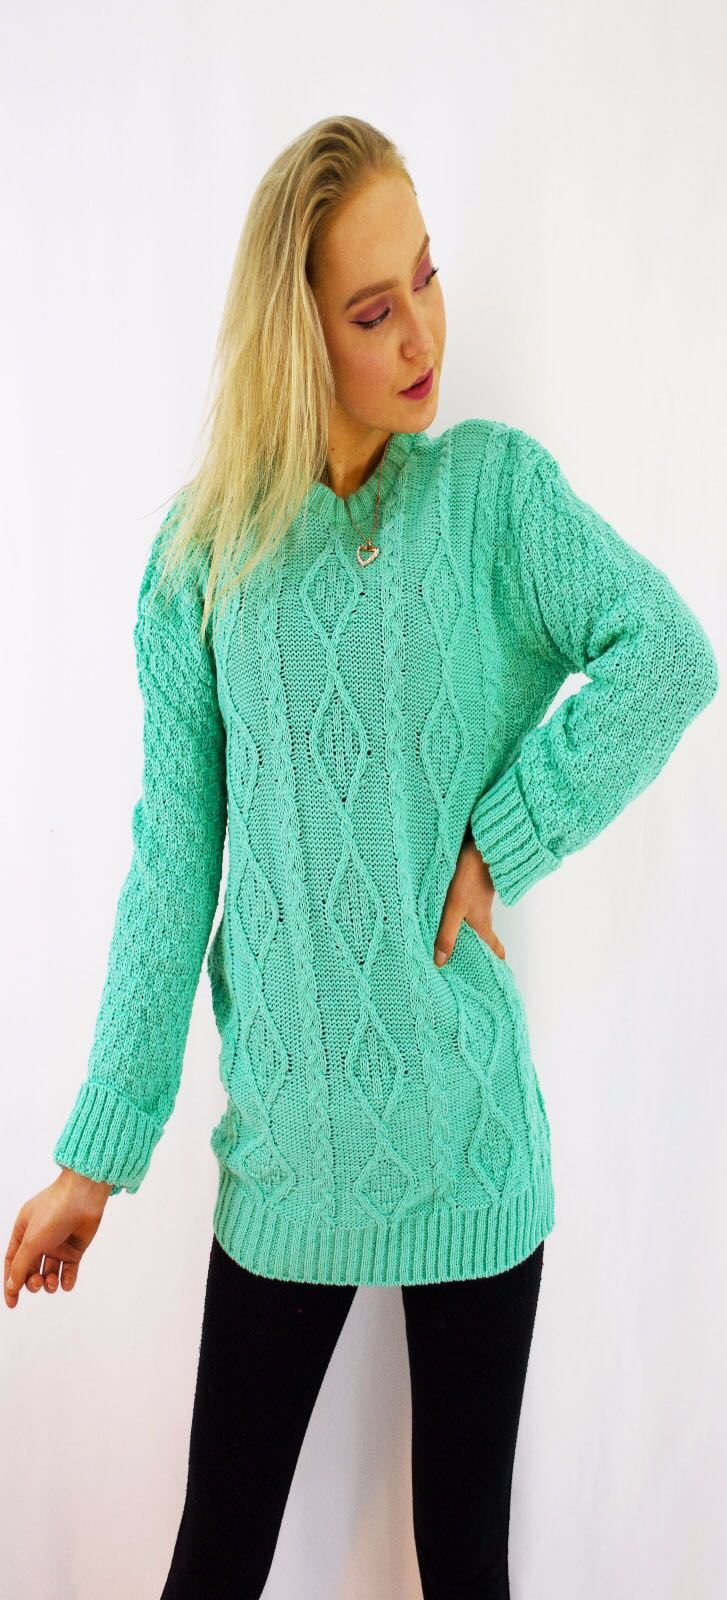 New-Ladies-Long-Manche-Chunky-Cable-Knitted-Jumper-crew-neck-hiver-Sweater-Top miniature 20